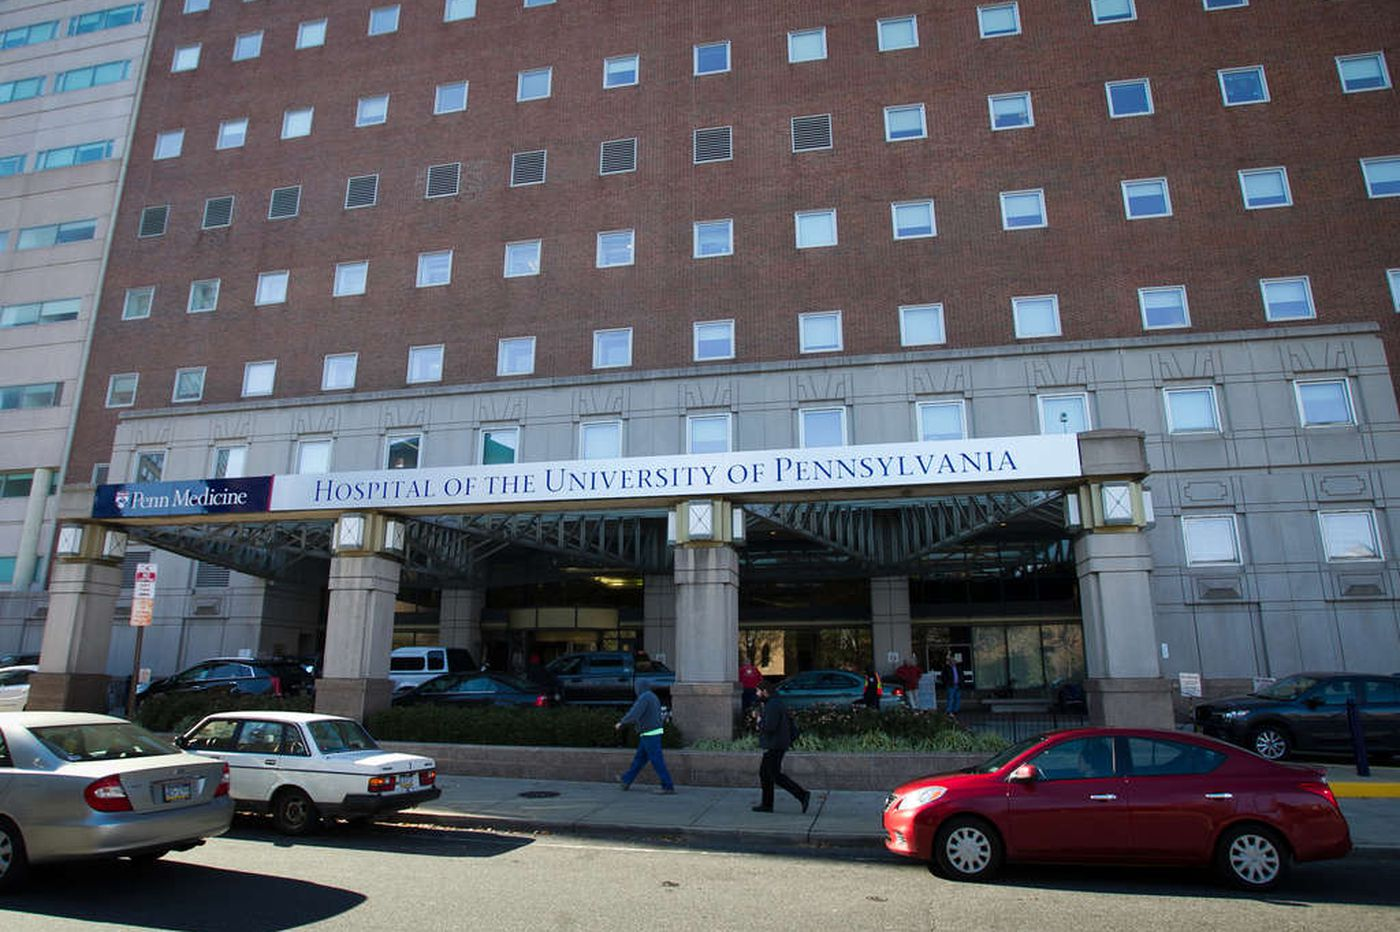 Ebola is ruled out for patient at Hospital of the University of Pennsylvania